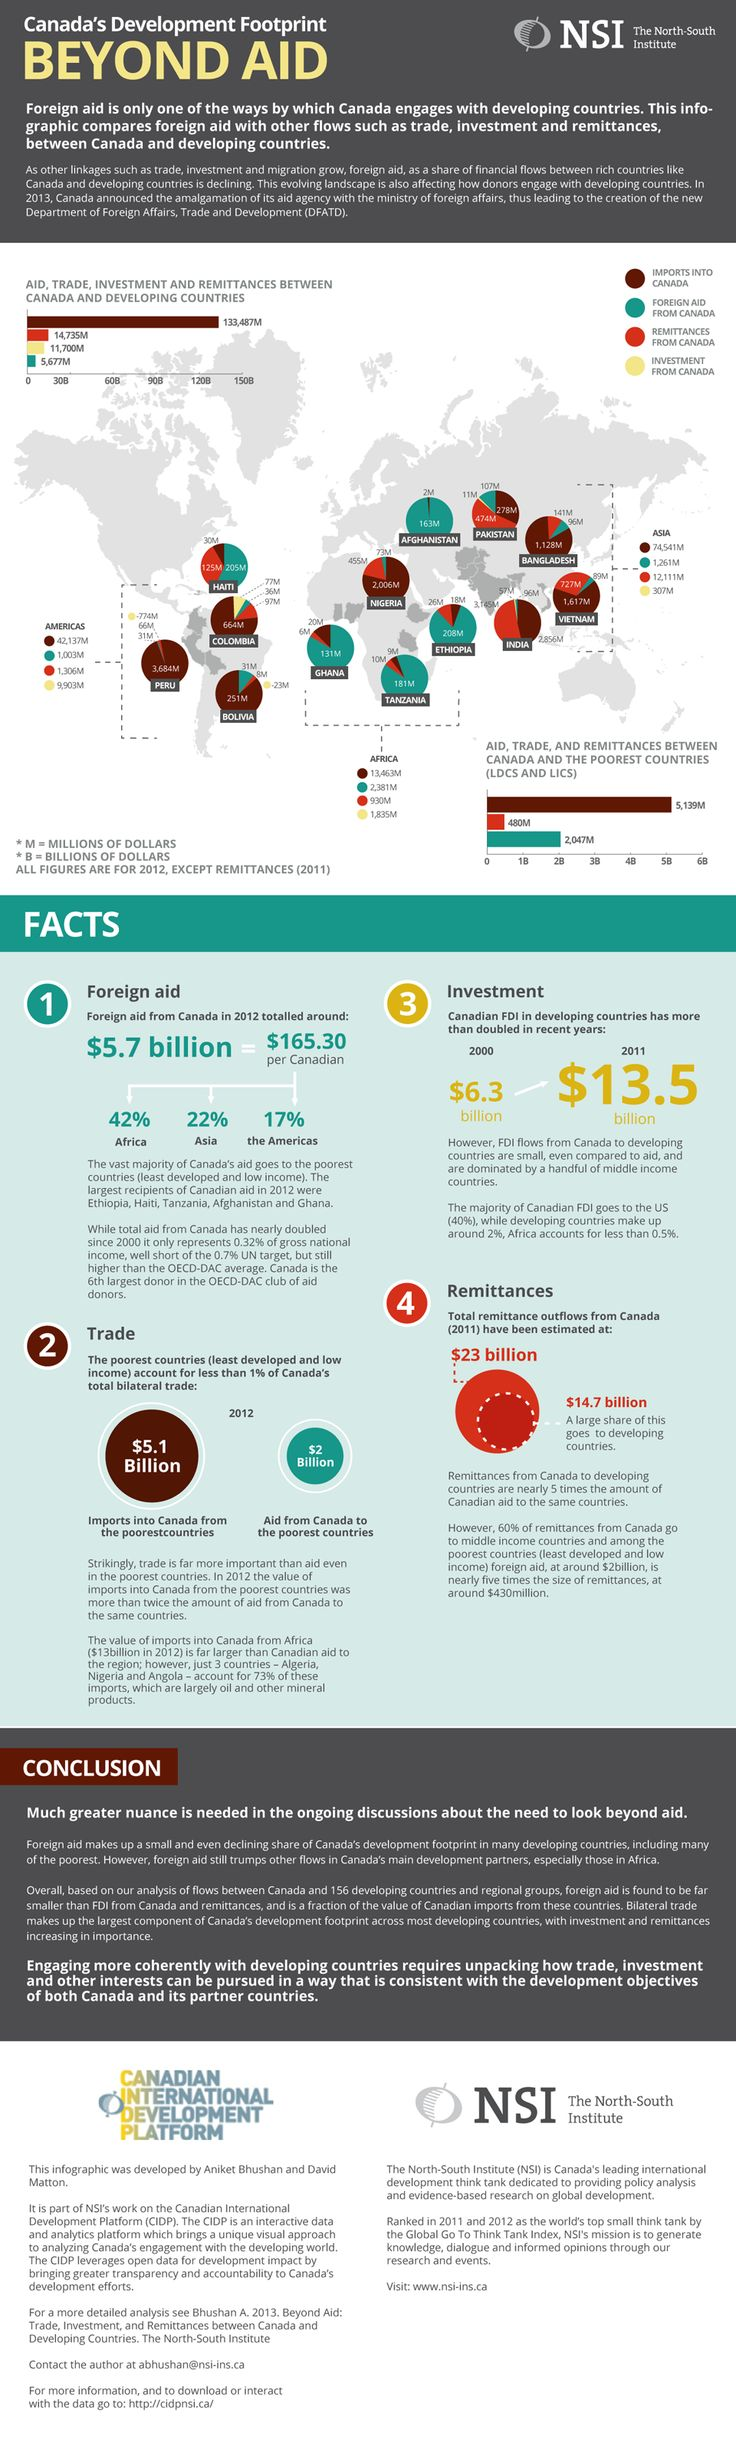 executive summary billabong international Executive summary united pharmaceuticals international is a comprehensive pharmaceutical distributor for many of the leading us pharmaceutical companies, delivering products quickly and accurately to a network of hospitals, pharmacies, and physician practices.